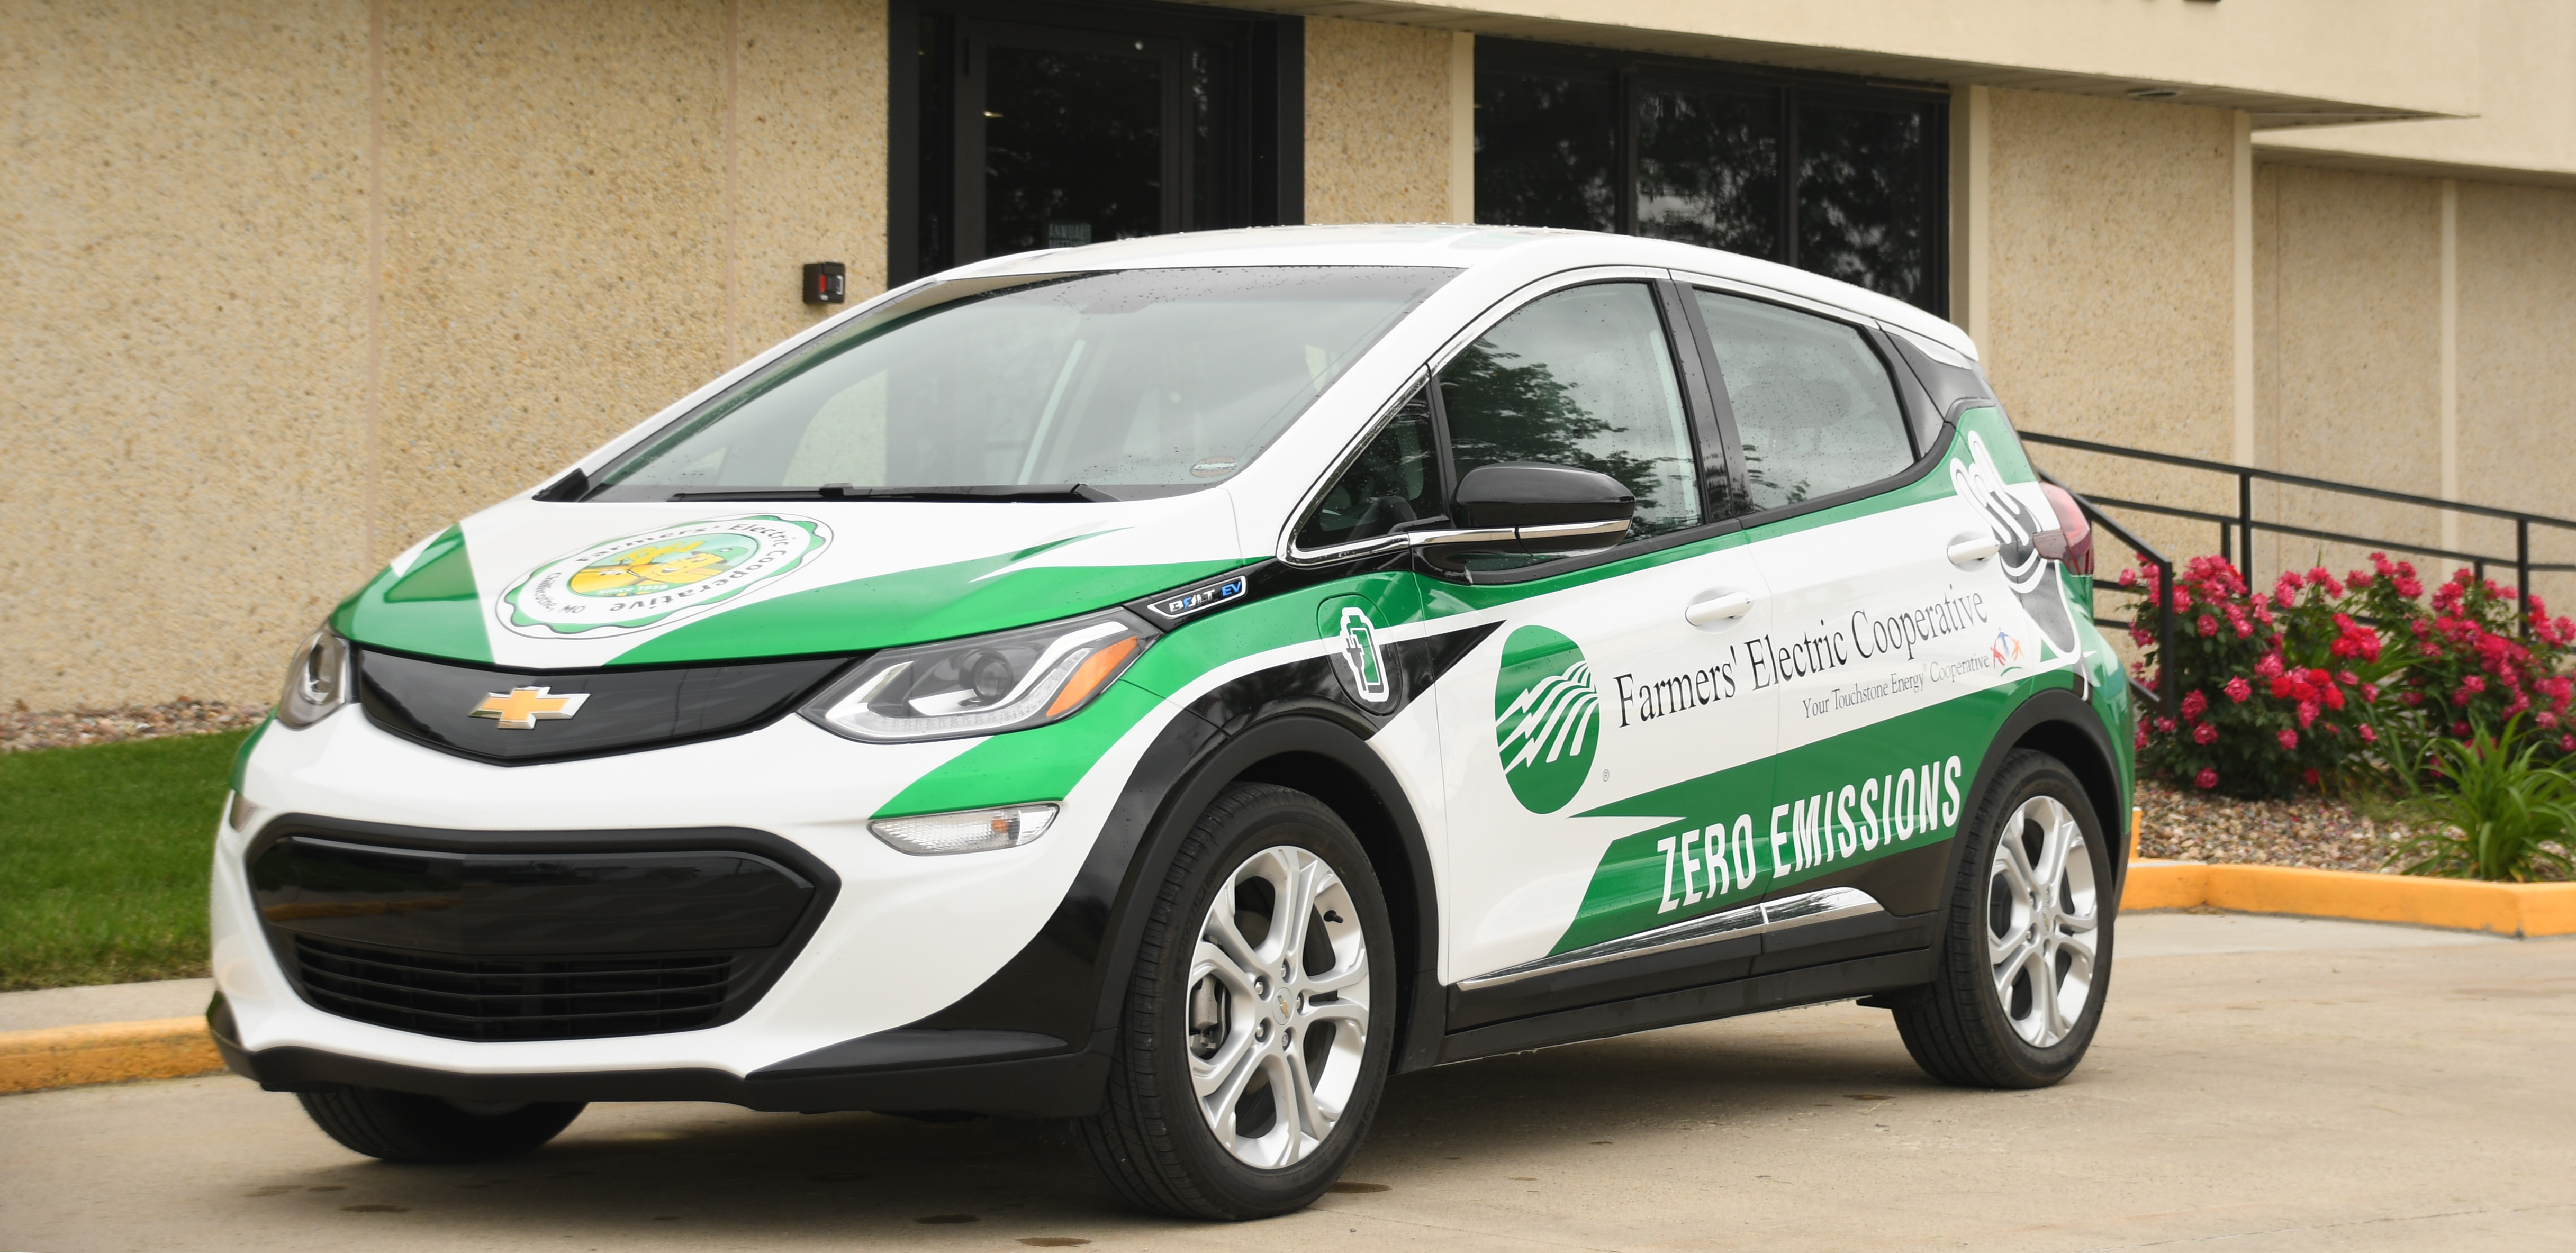 Farmers' Electric's Chevy Bolt EV